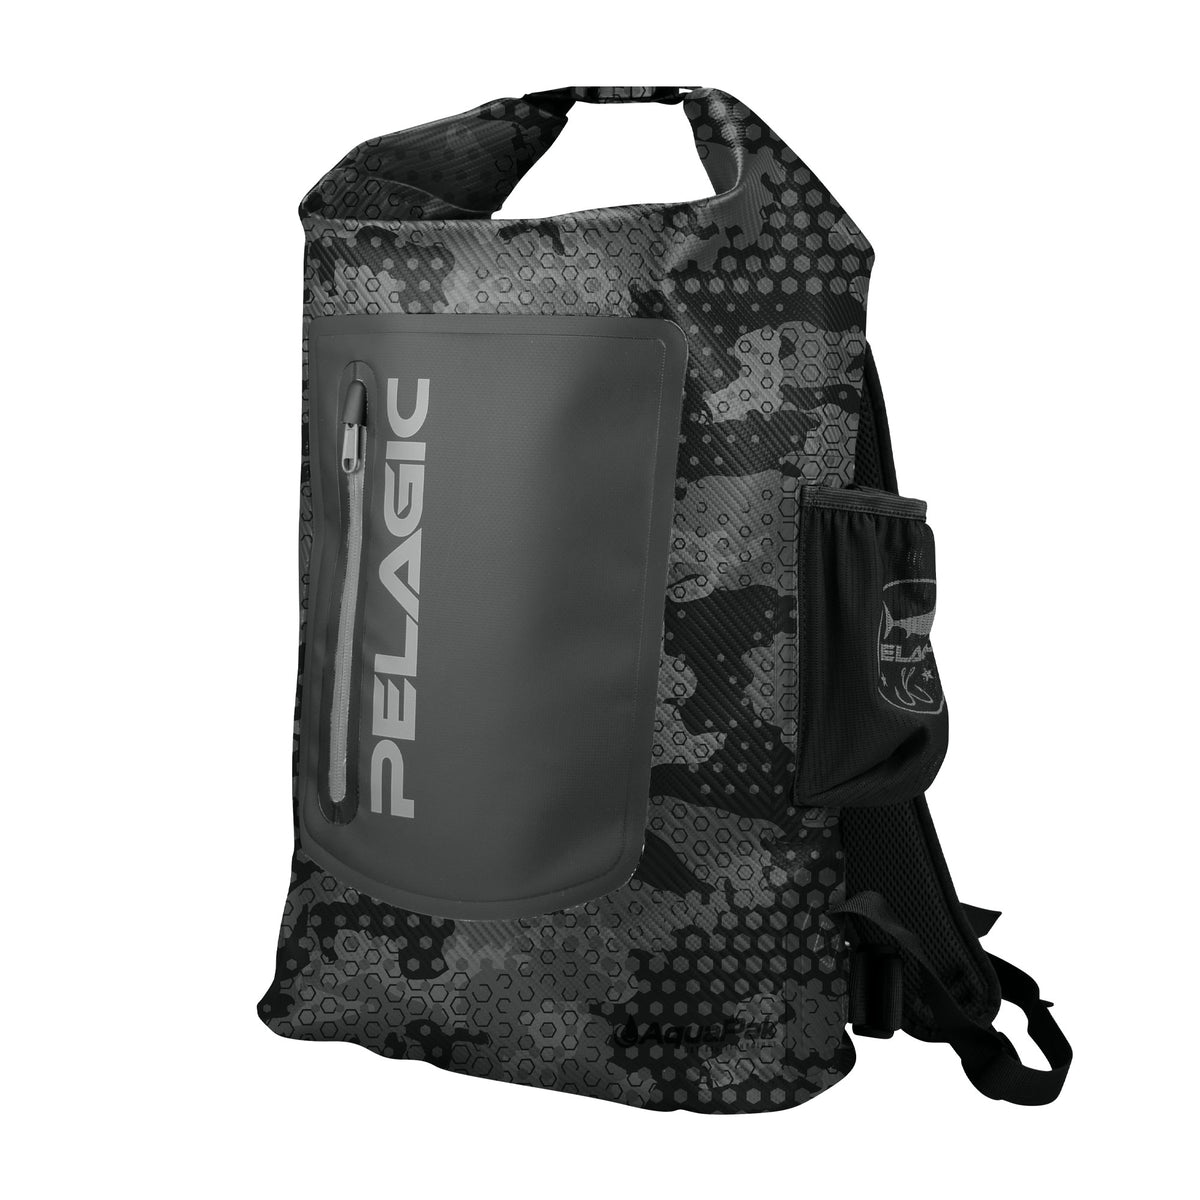 30L Aquapak Backpack Big Image - 1